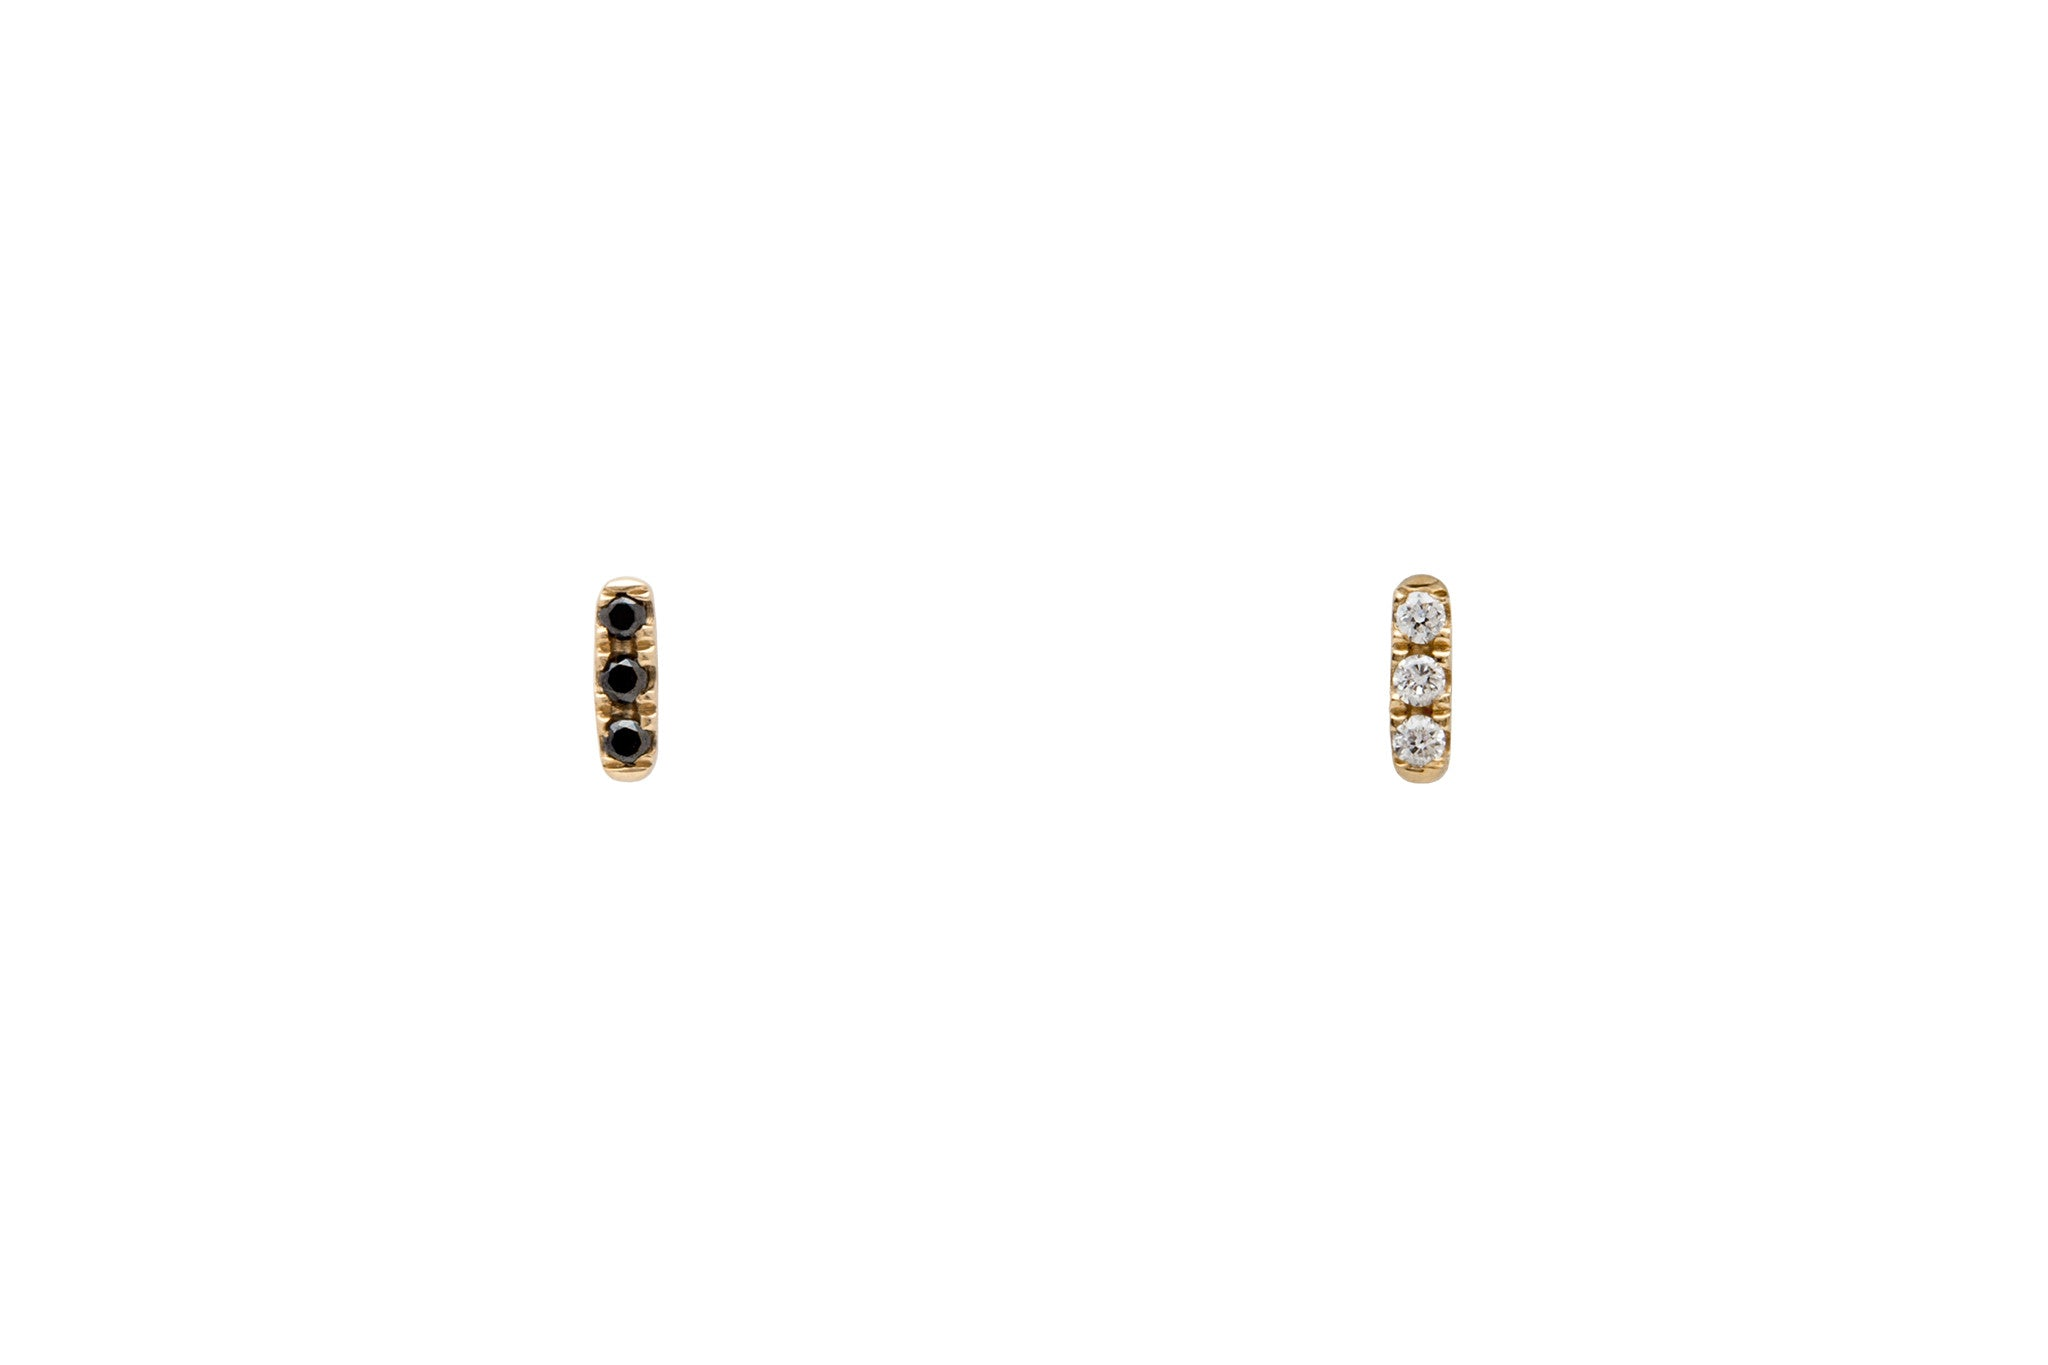 Mismatched 14k Gold Tiny Diamond Bar Earrings E2318 E2319